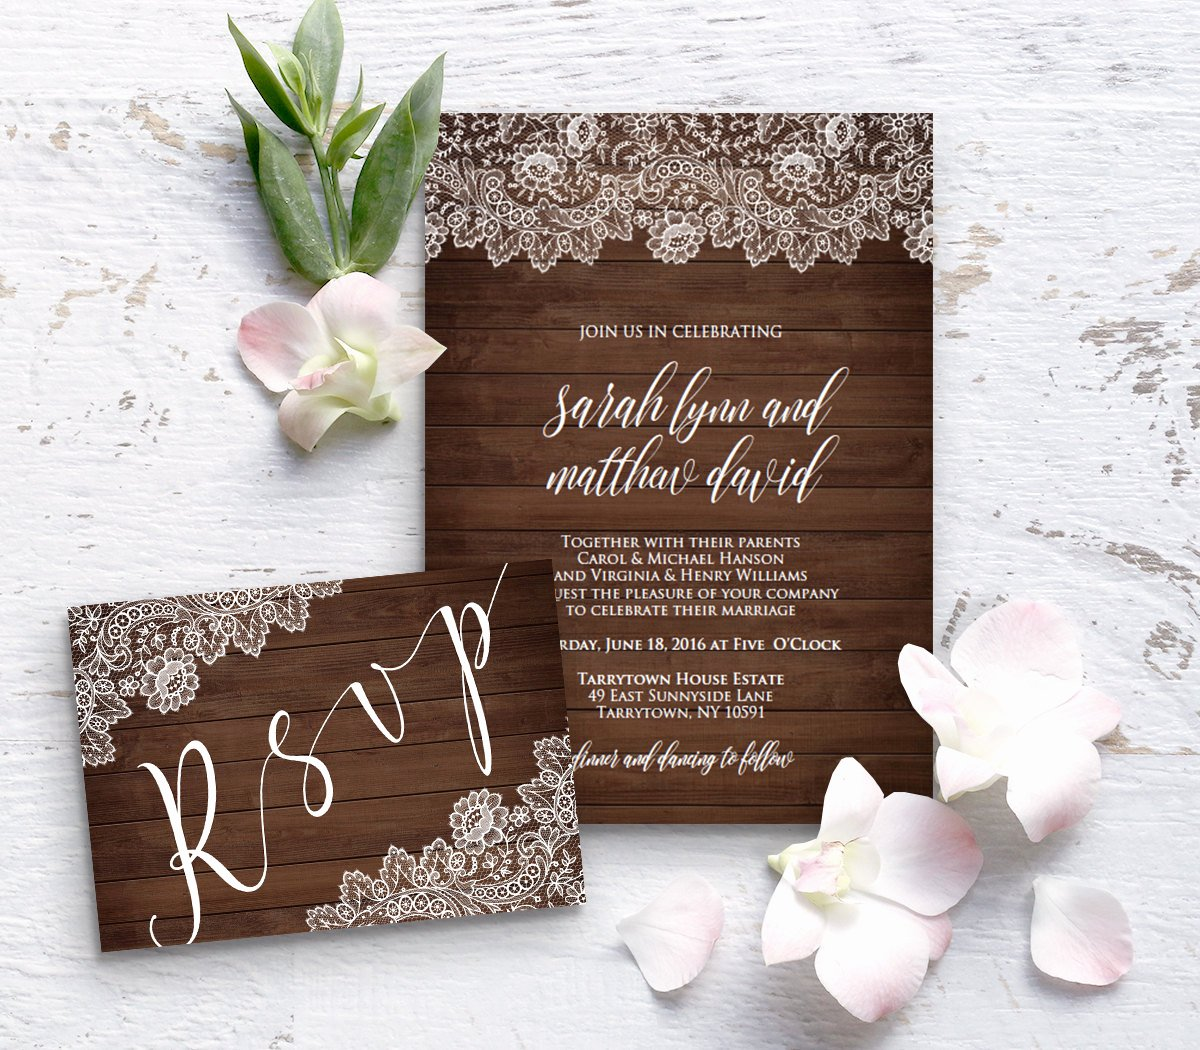 Rustic Wedding Invitation Template Awesome Wedding Invitation Template Rustic Wood Vintage Lace Diy